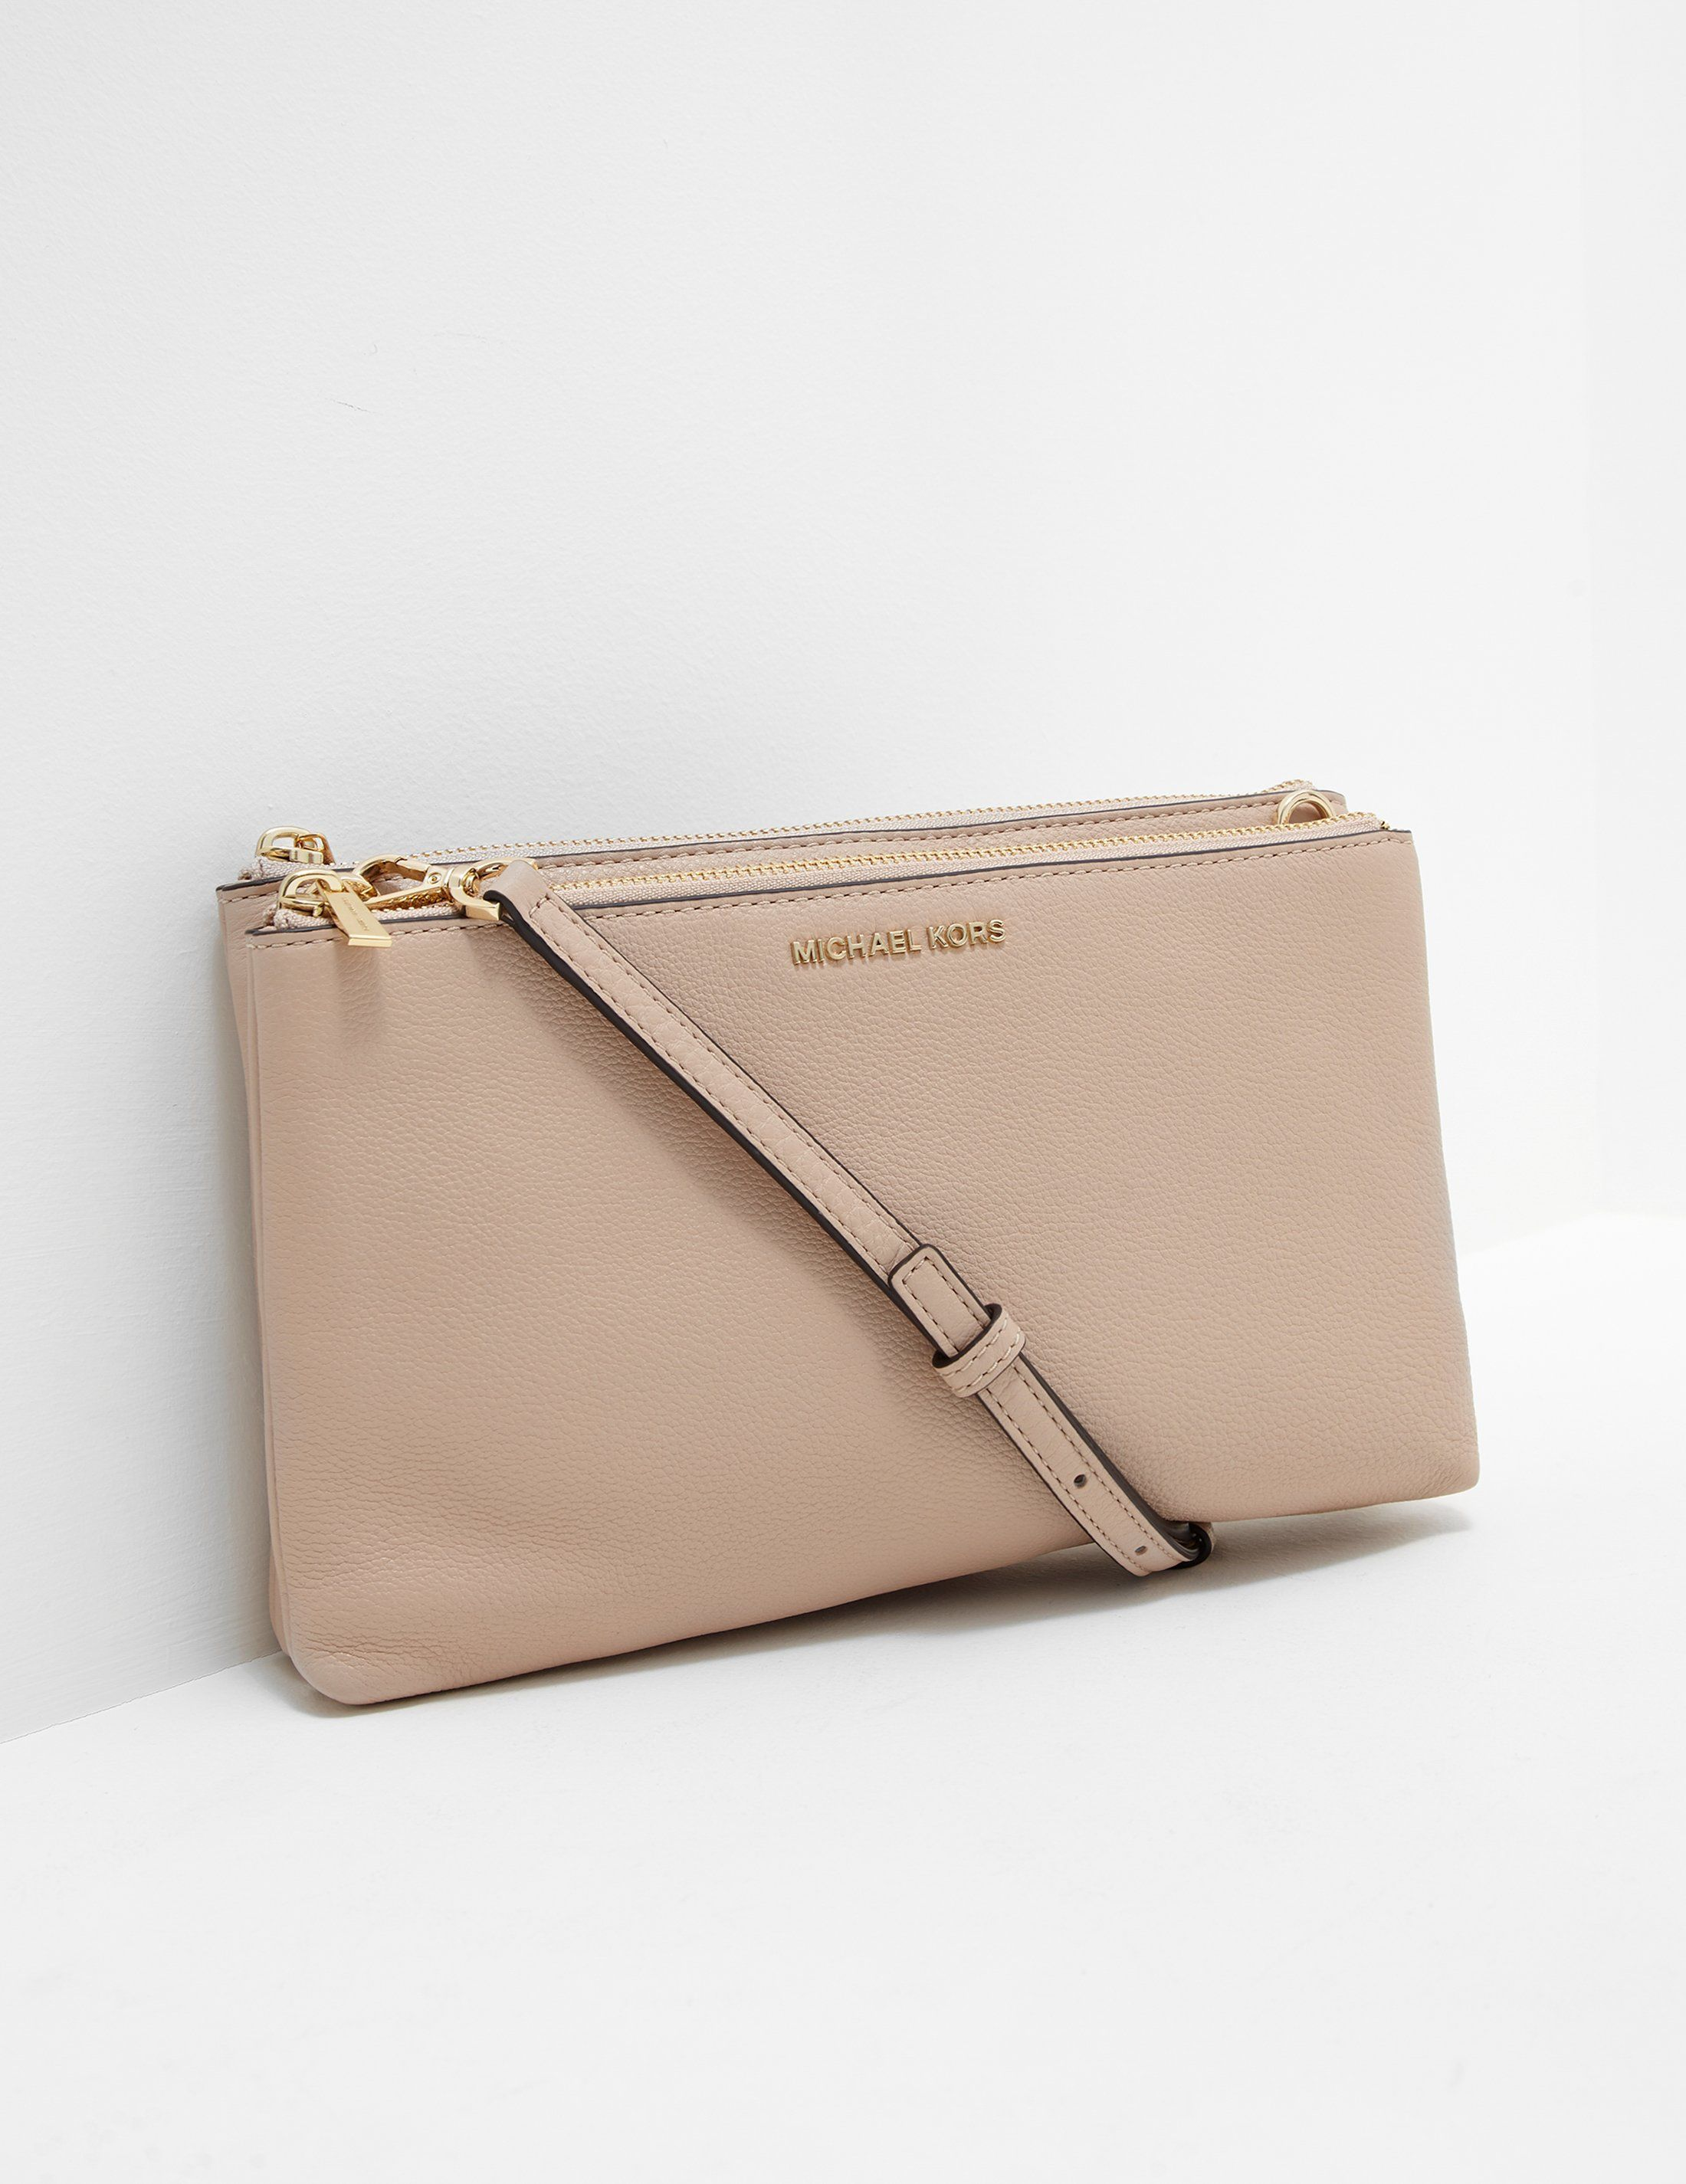 Michael Kors Adele Double Crossbody bag